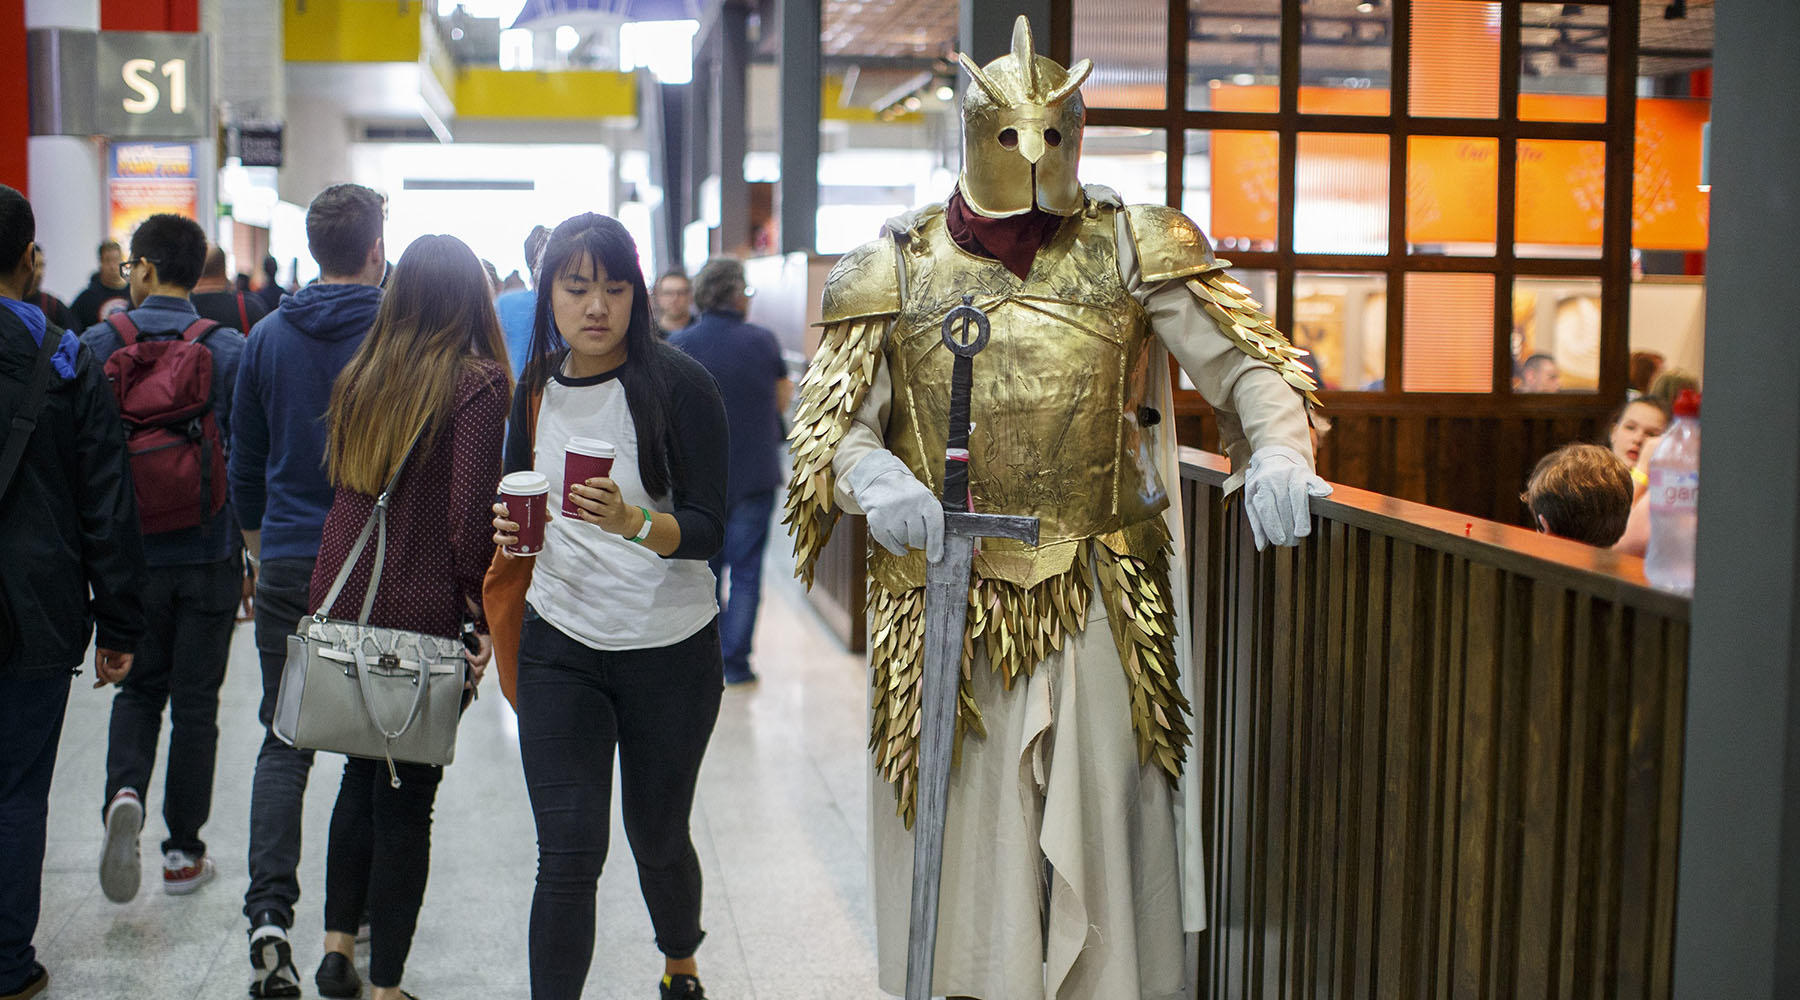 This absolutely golden cosplay photo